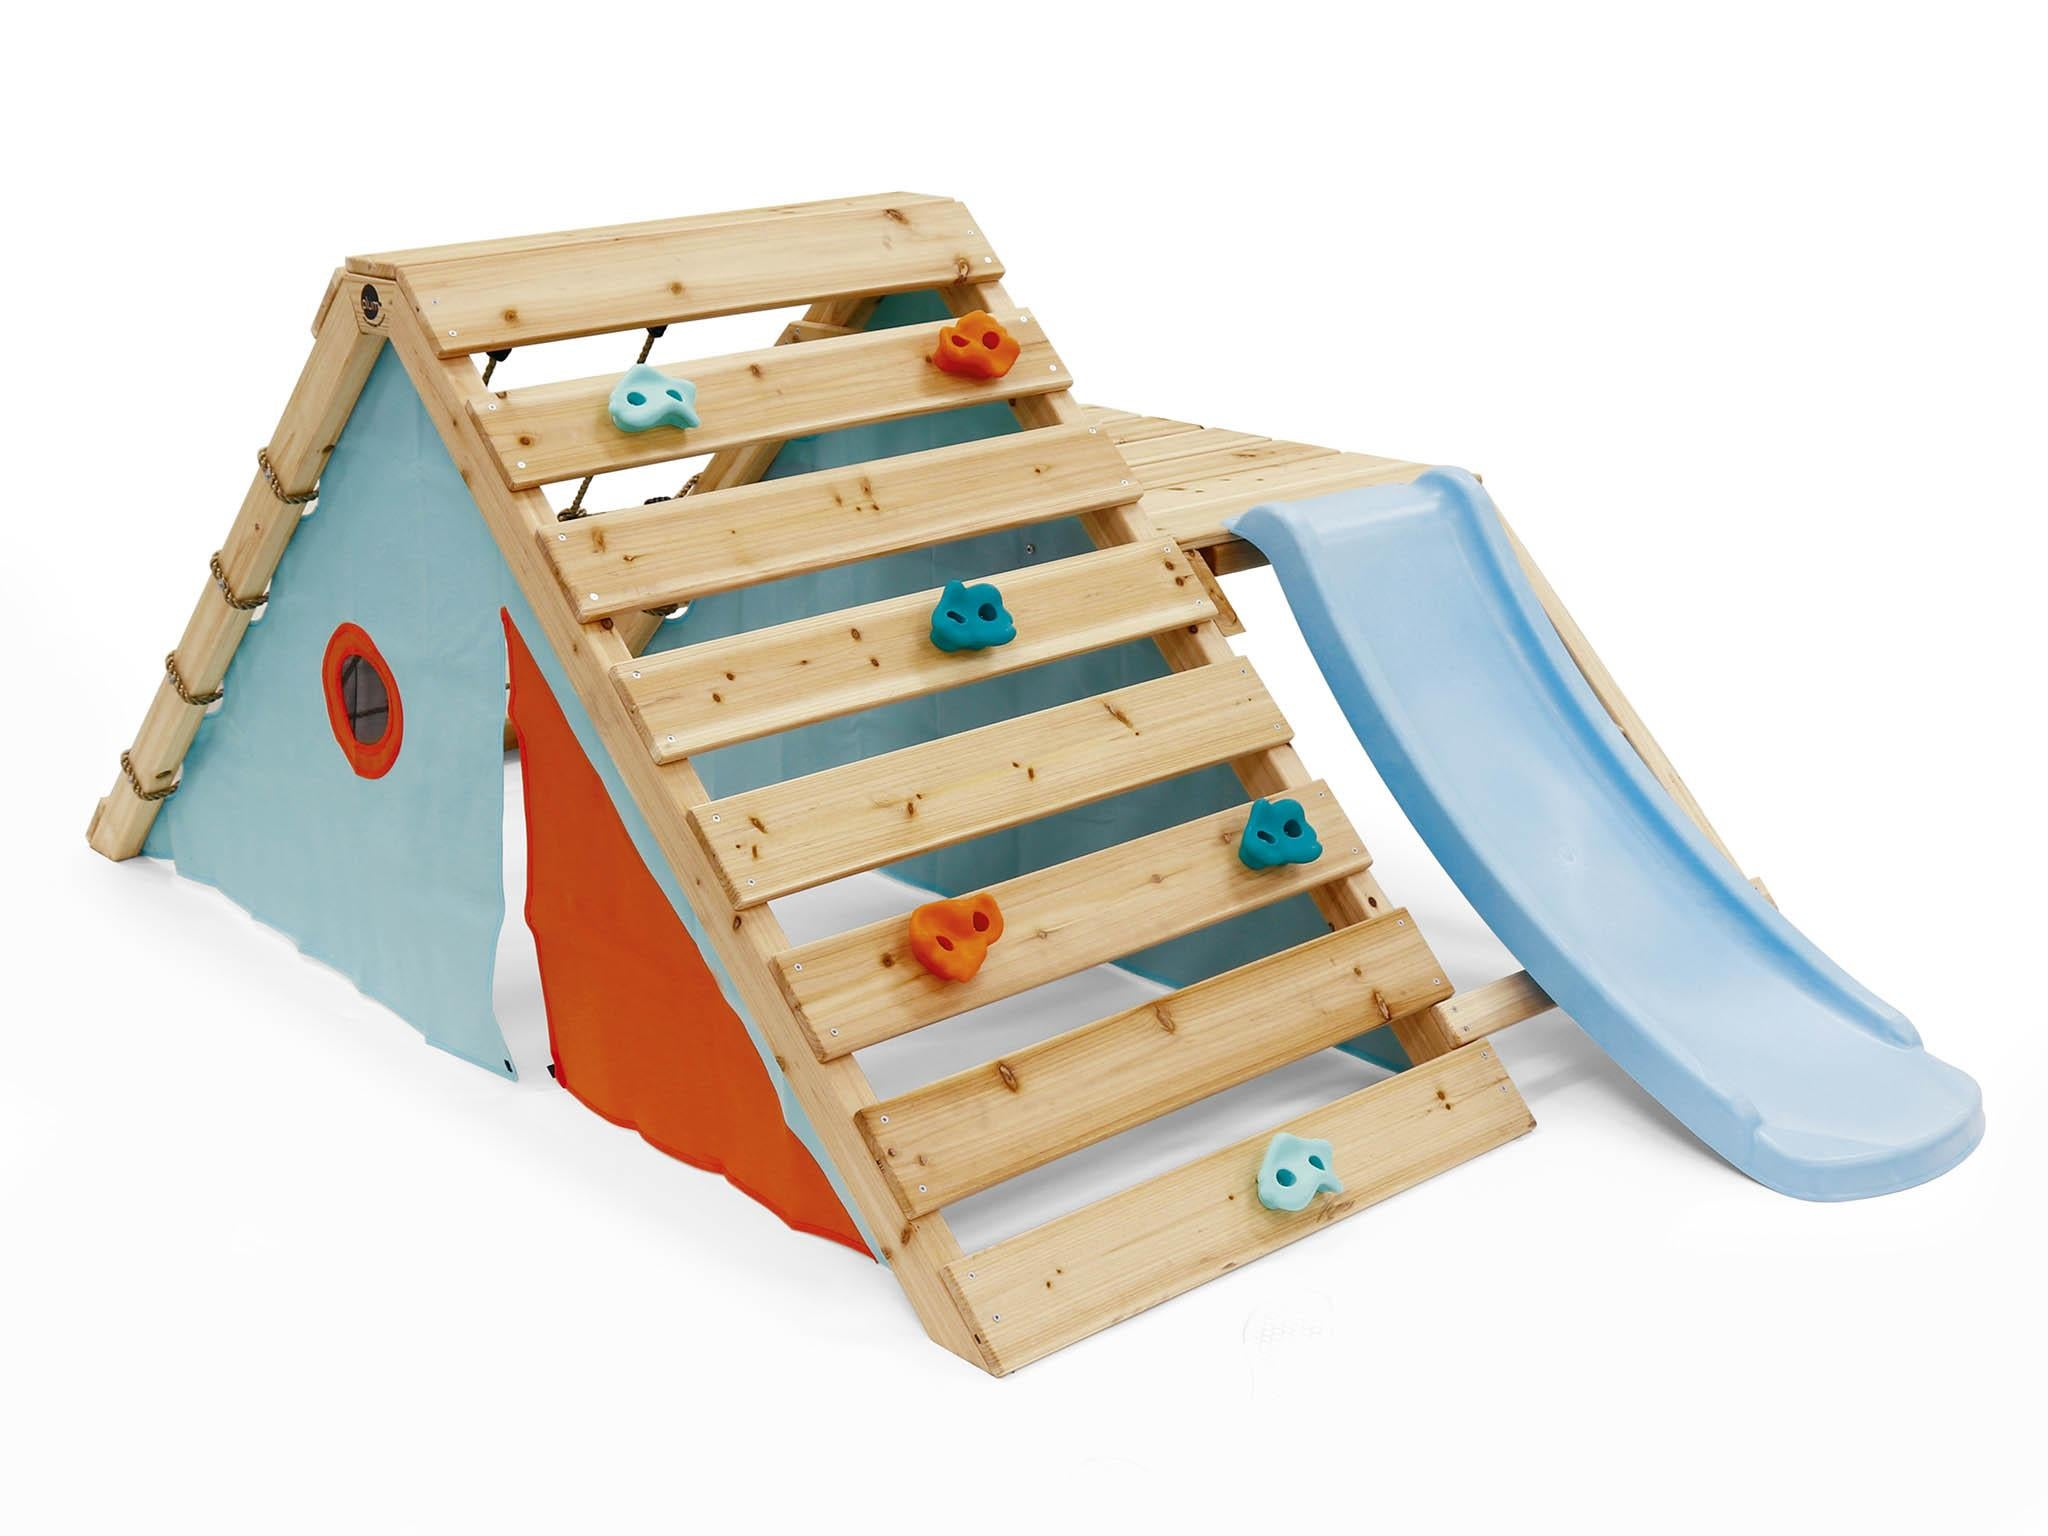 Best climbing frame for your kids: From walls to slides and ropes